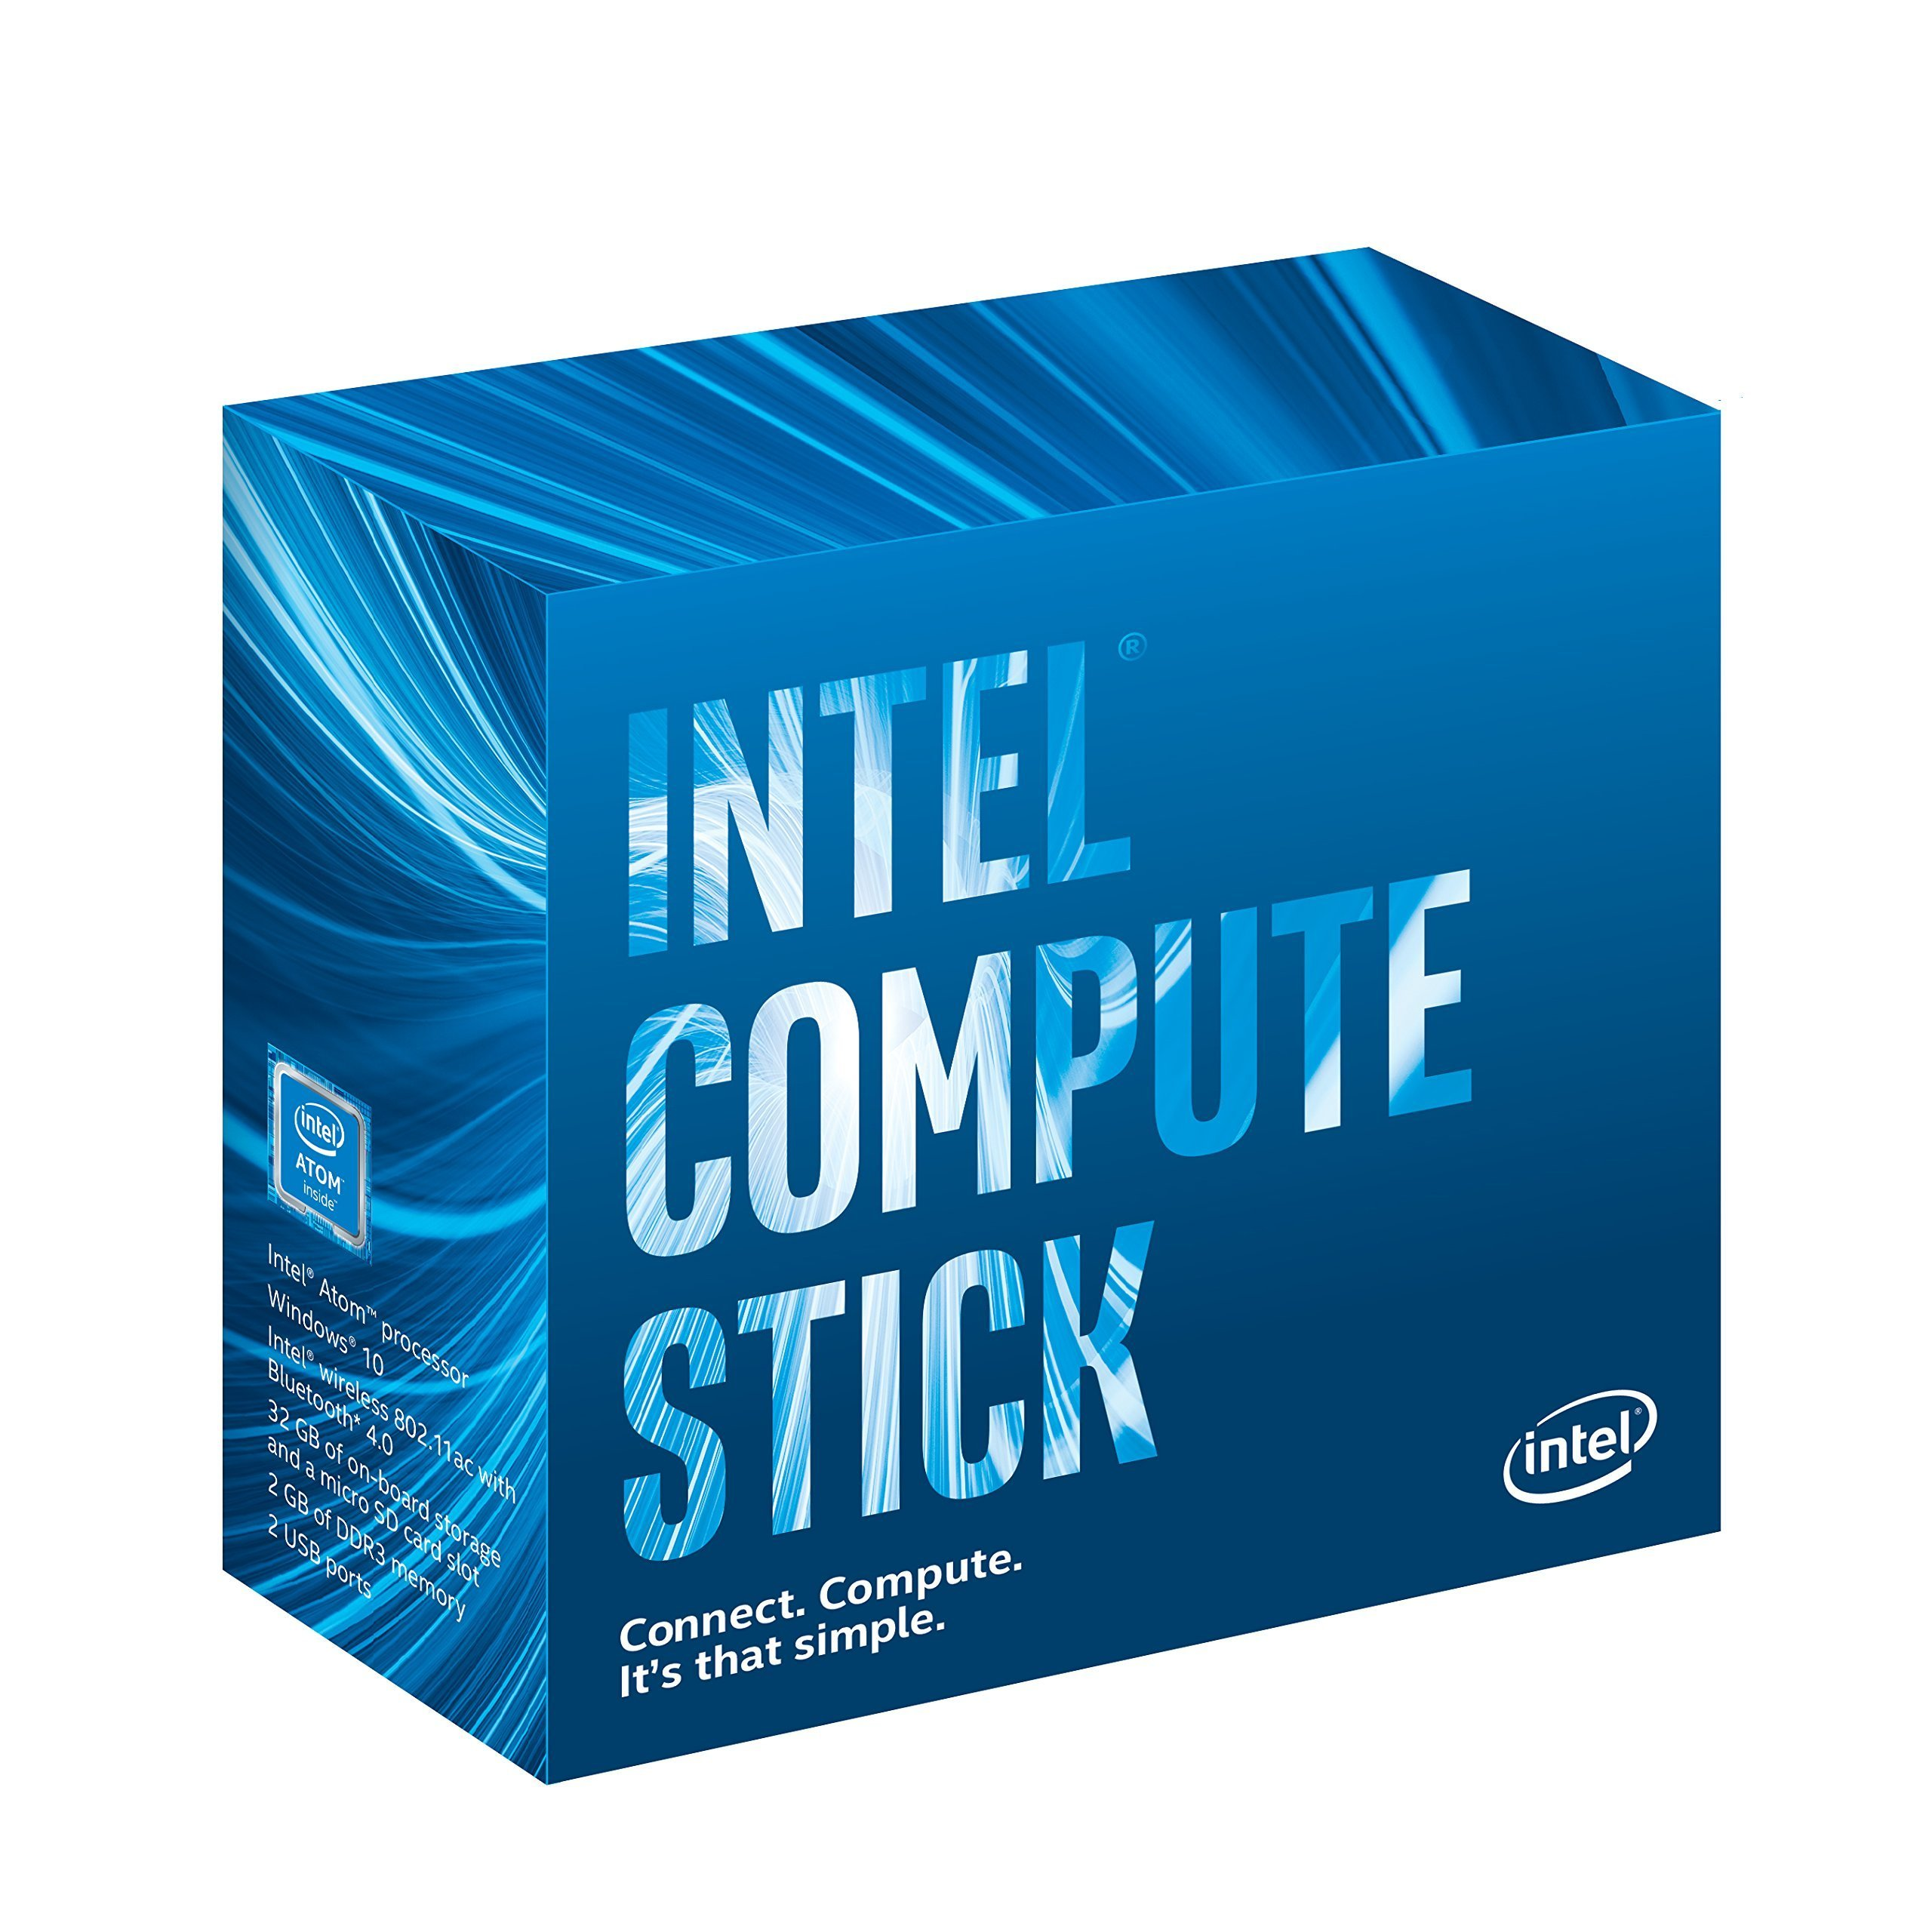 Intel Compute Stick CS125 Computer with Intel Atom x5 Processor and Windows 10 (BOXSTK1AW32SC) by Intel